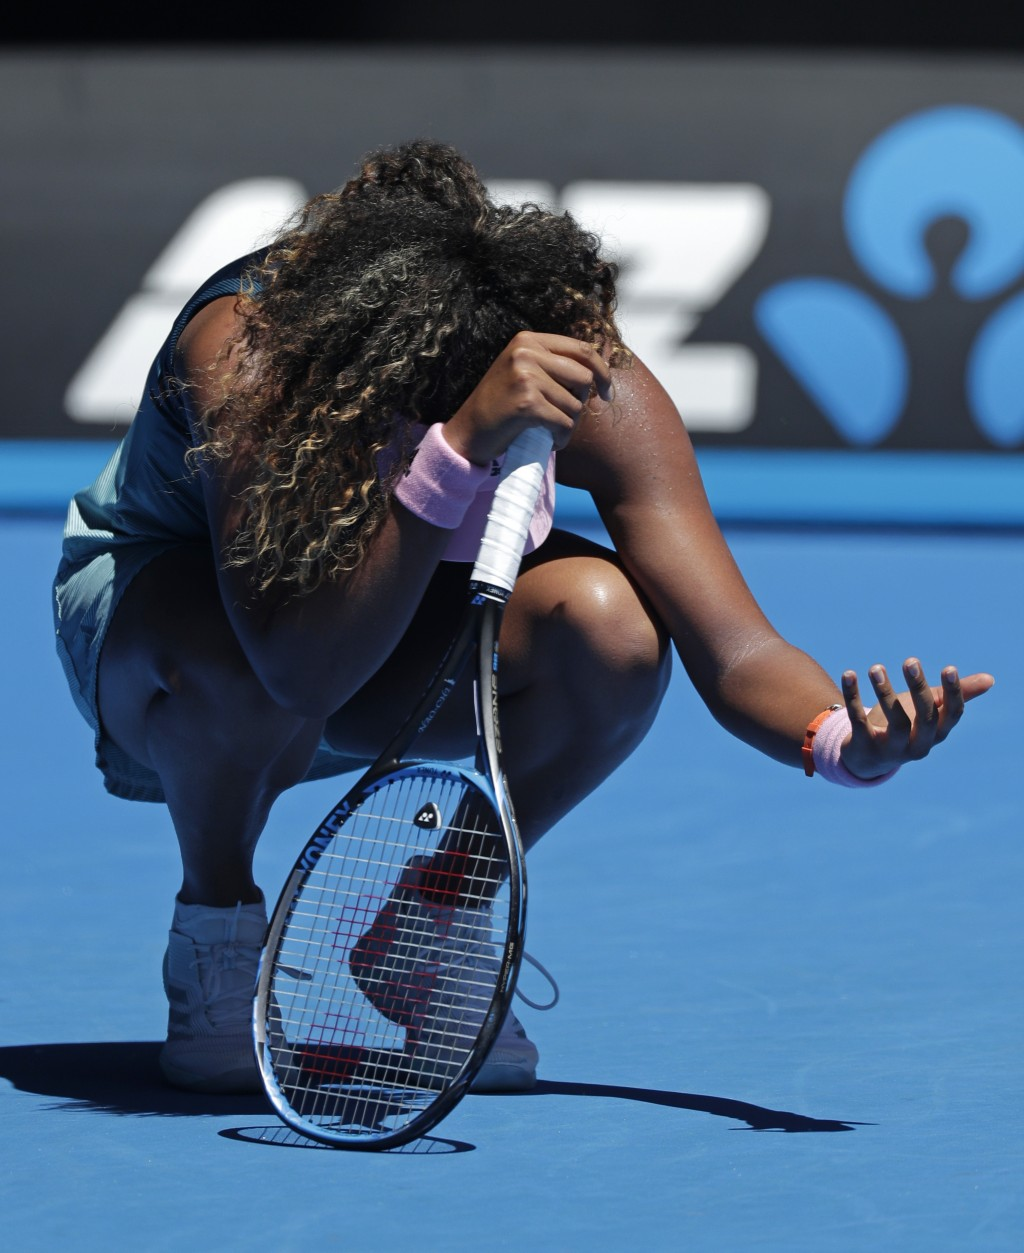 Japan's Naomi Osaka reacts after losing a point against Taiwan's Hsieh Su-Wei during in third round match at the Australian Open tennis championships